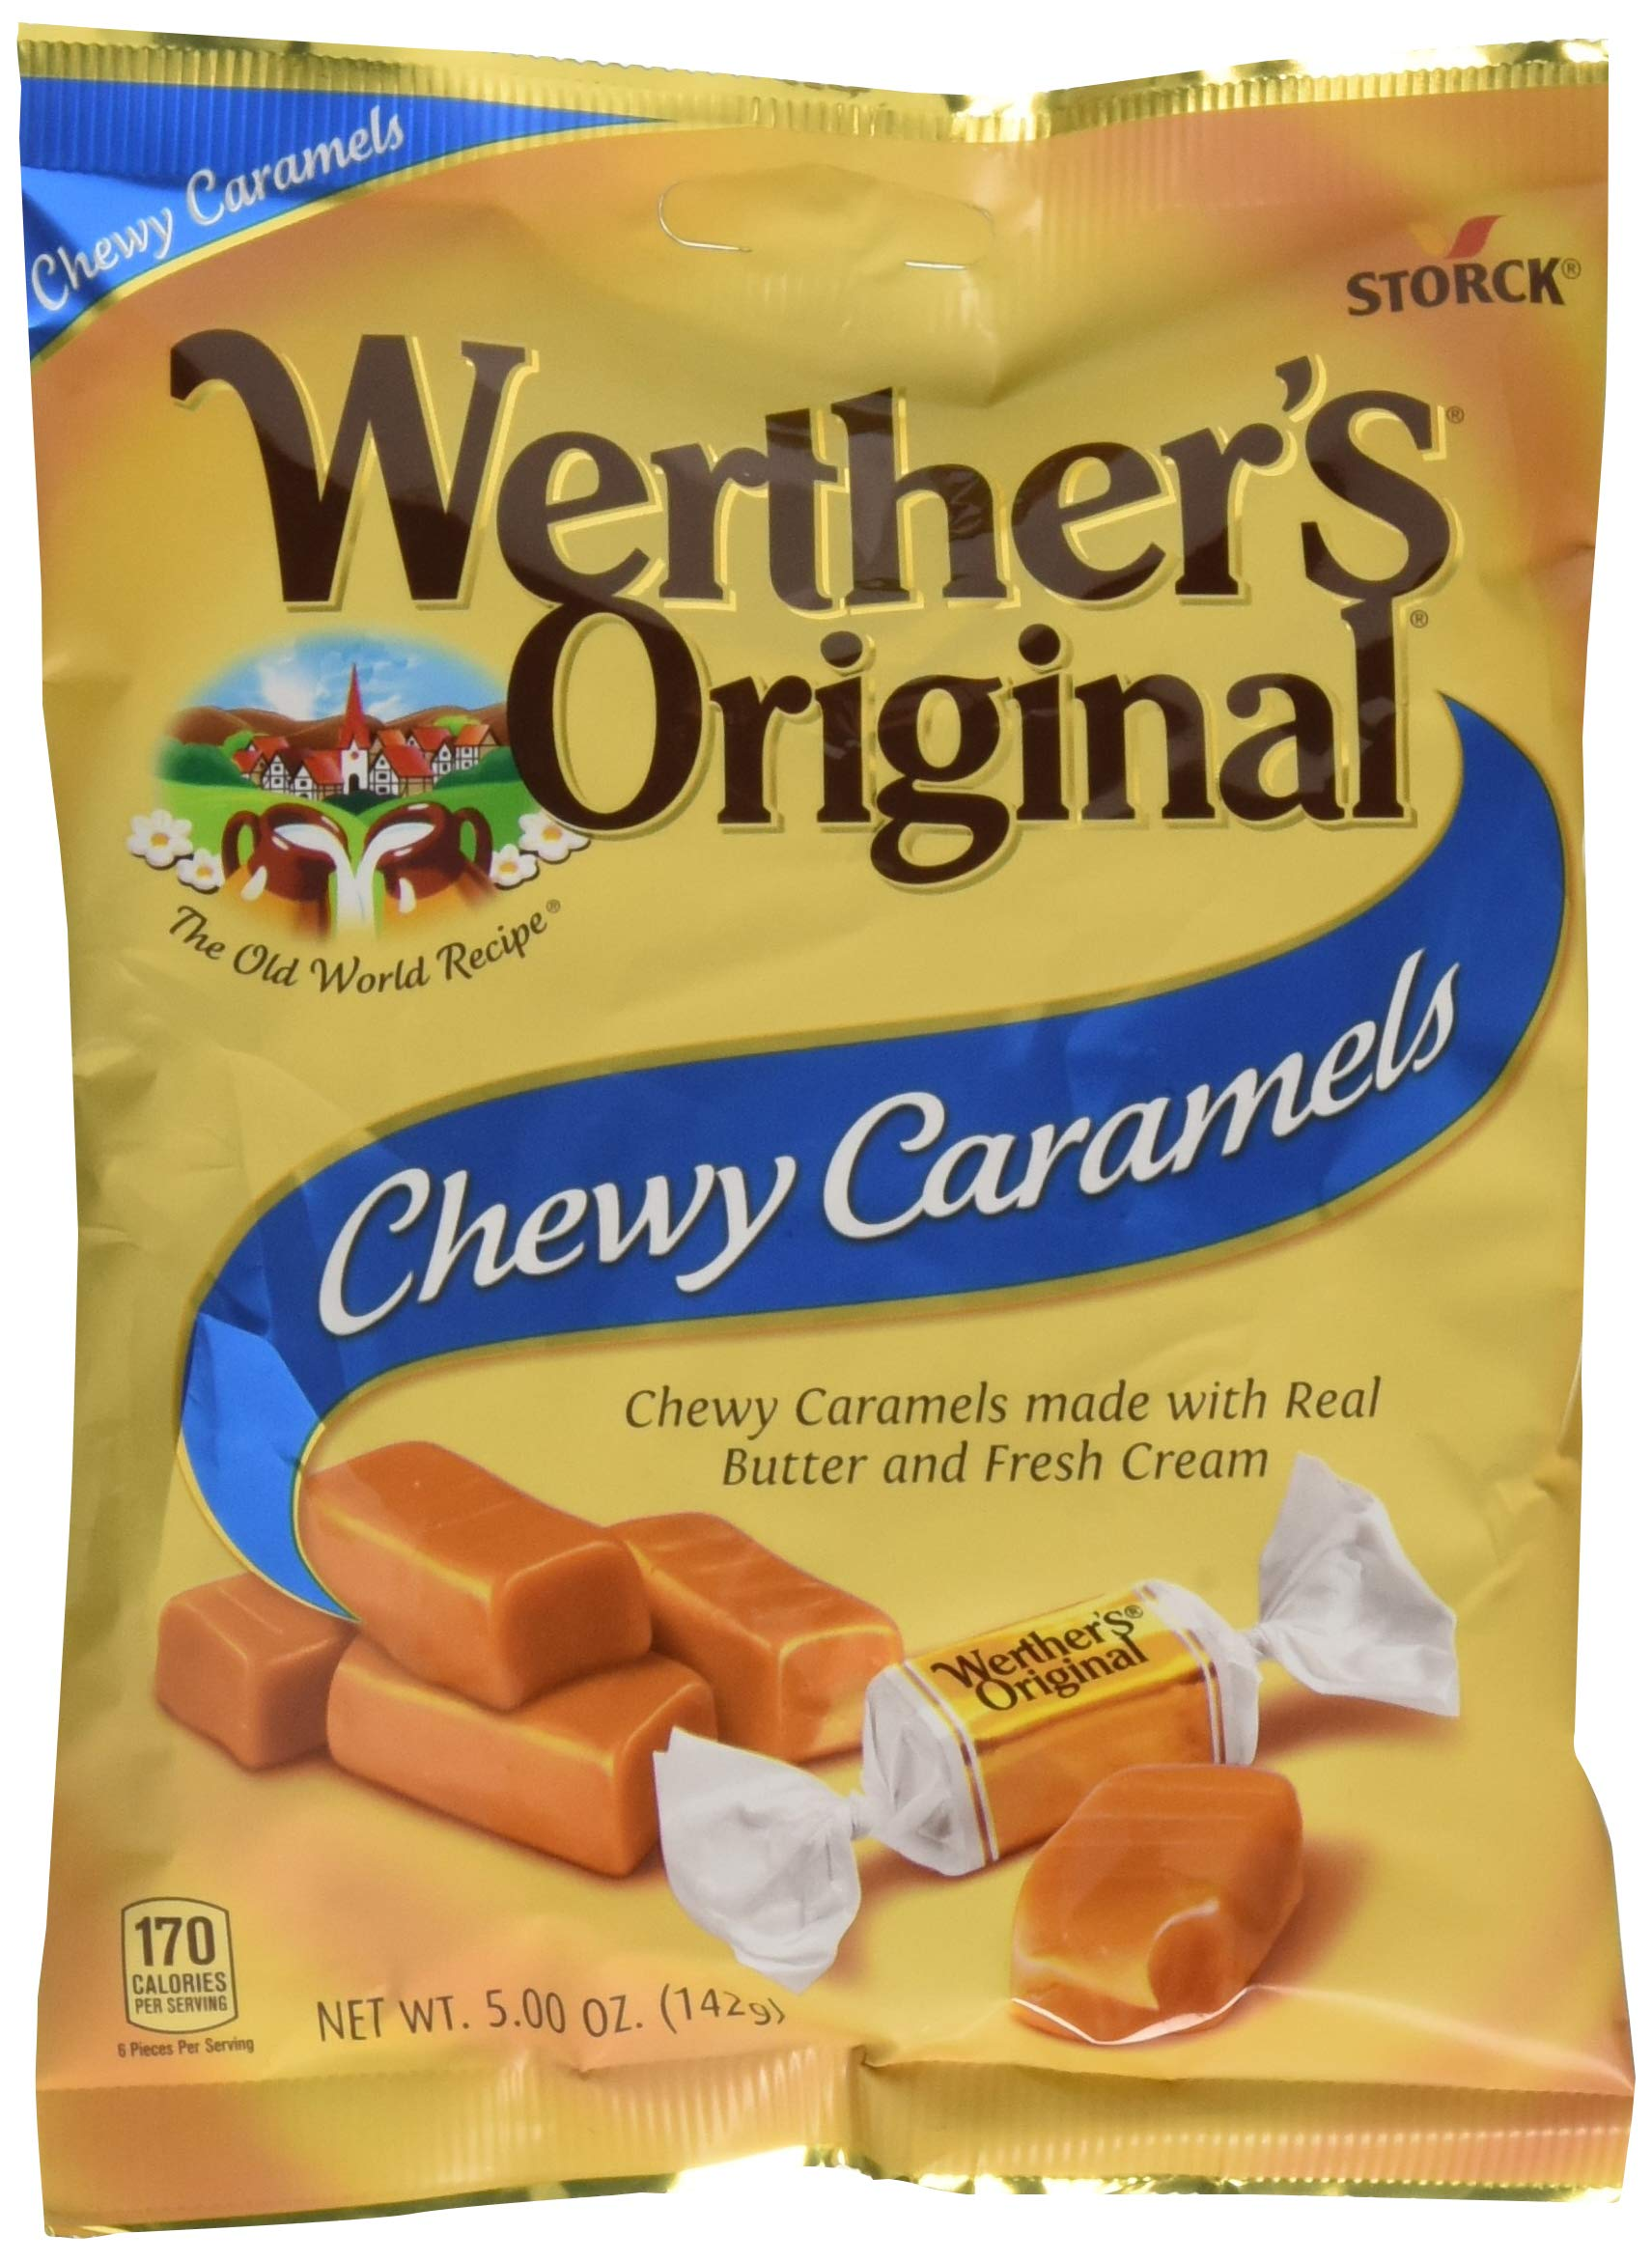 WERTHER'S ORIGINAL Chewy Caramels, 5.0 Ounce Bags (Pack of 12), Bulk Candy, Individually Wrapped Candy Caramels, Caramel Candy Sweets, Bag of Candy by Werther's (Image #1)